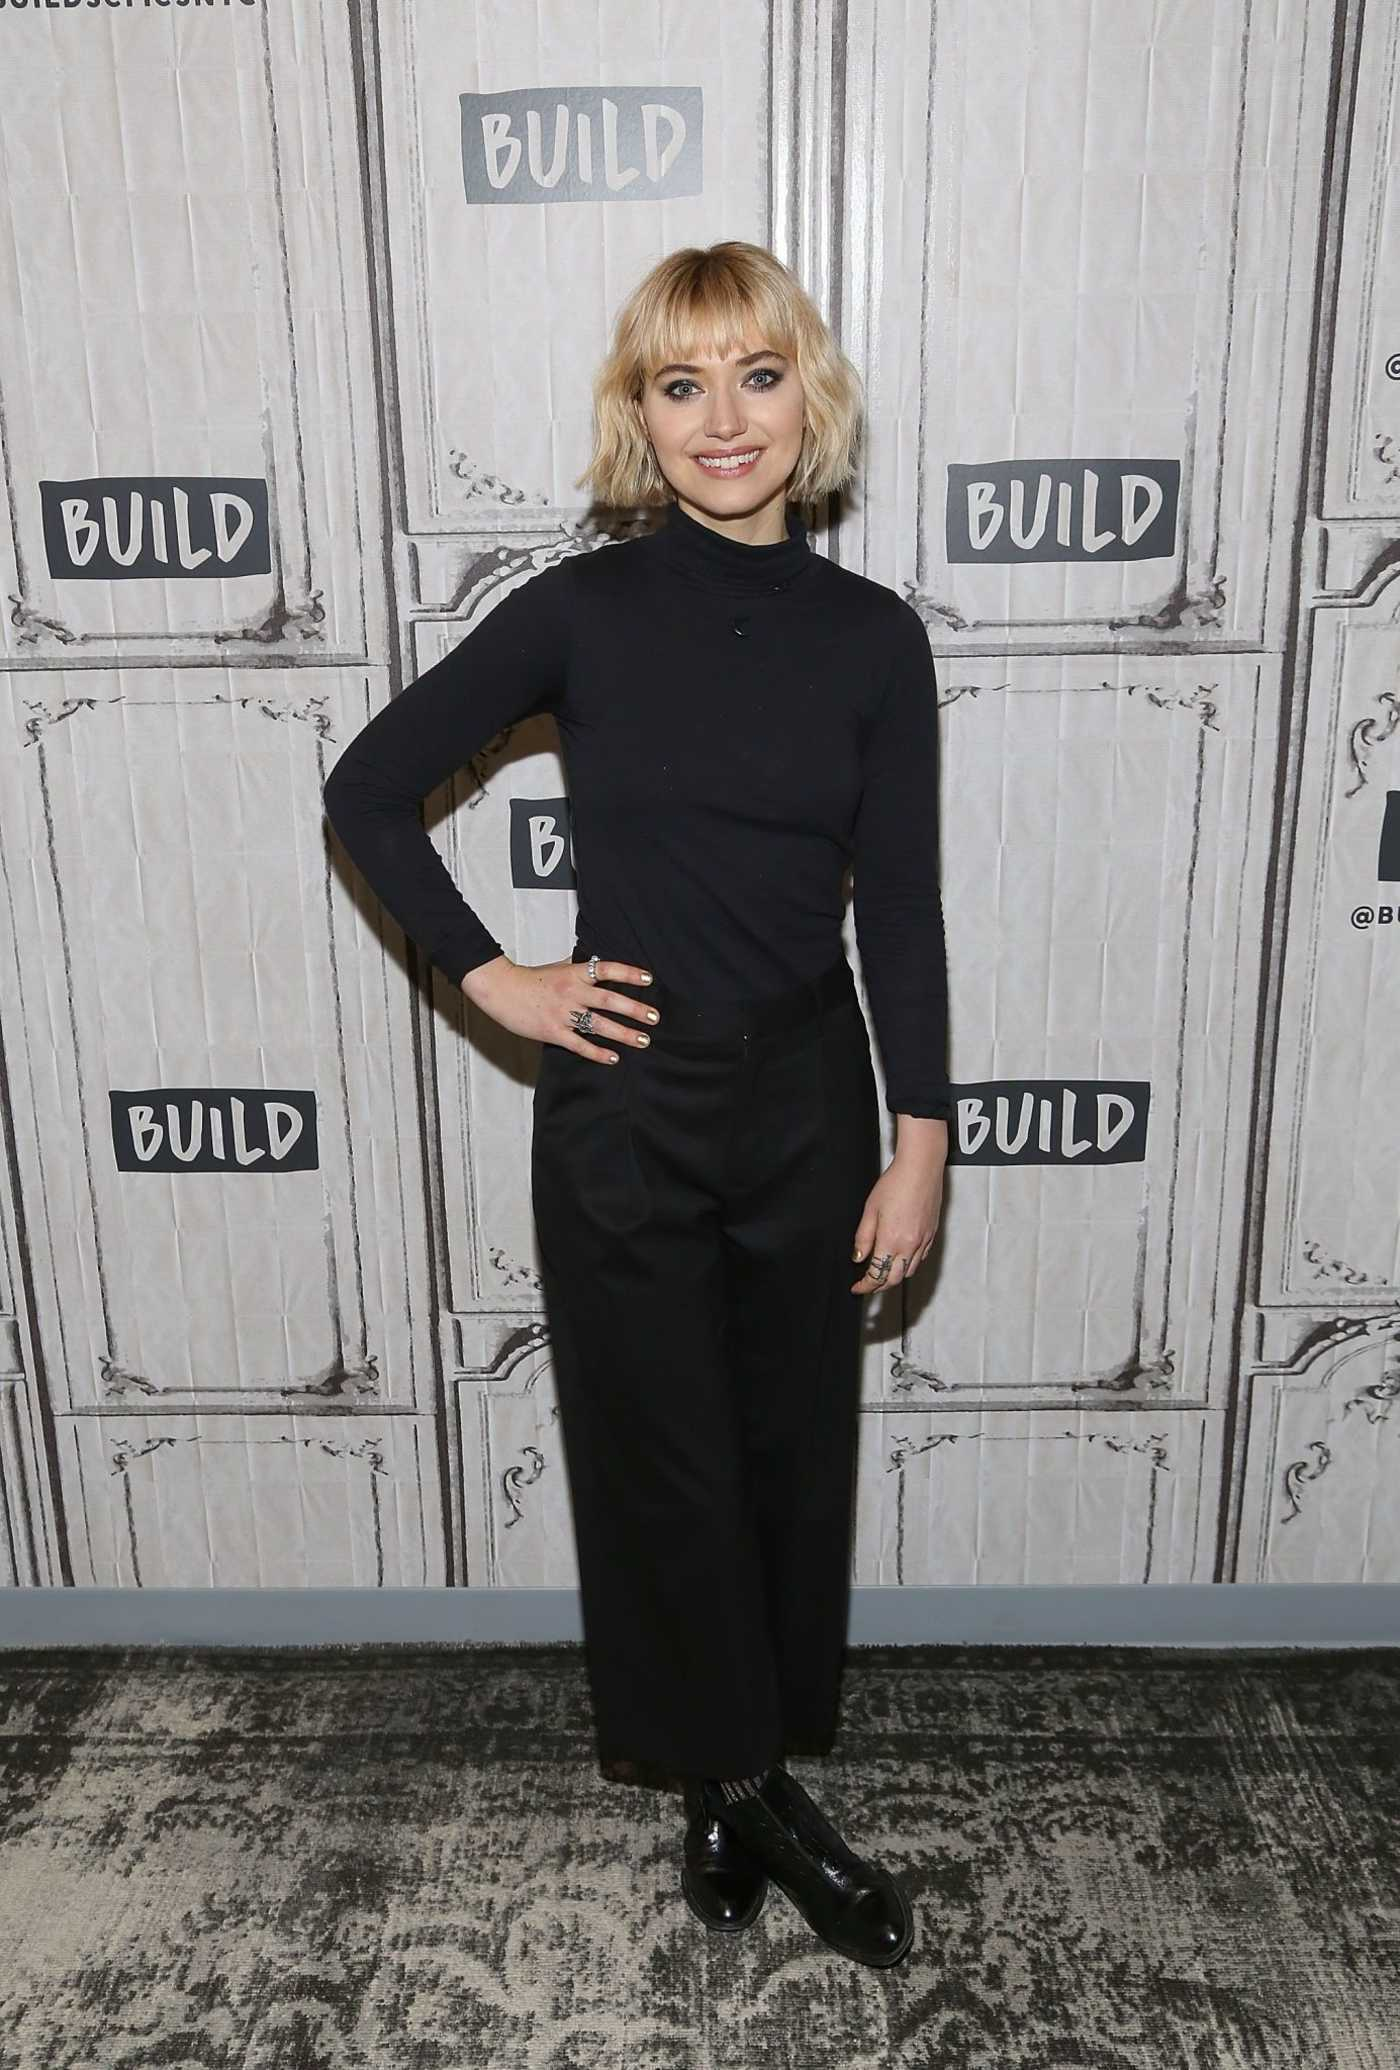 Imogen Poots Visits AOL Build Studios in New York City 11/15/2018